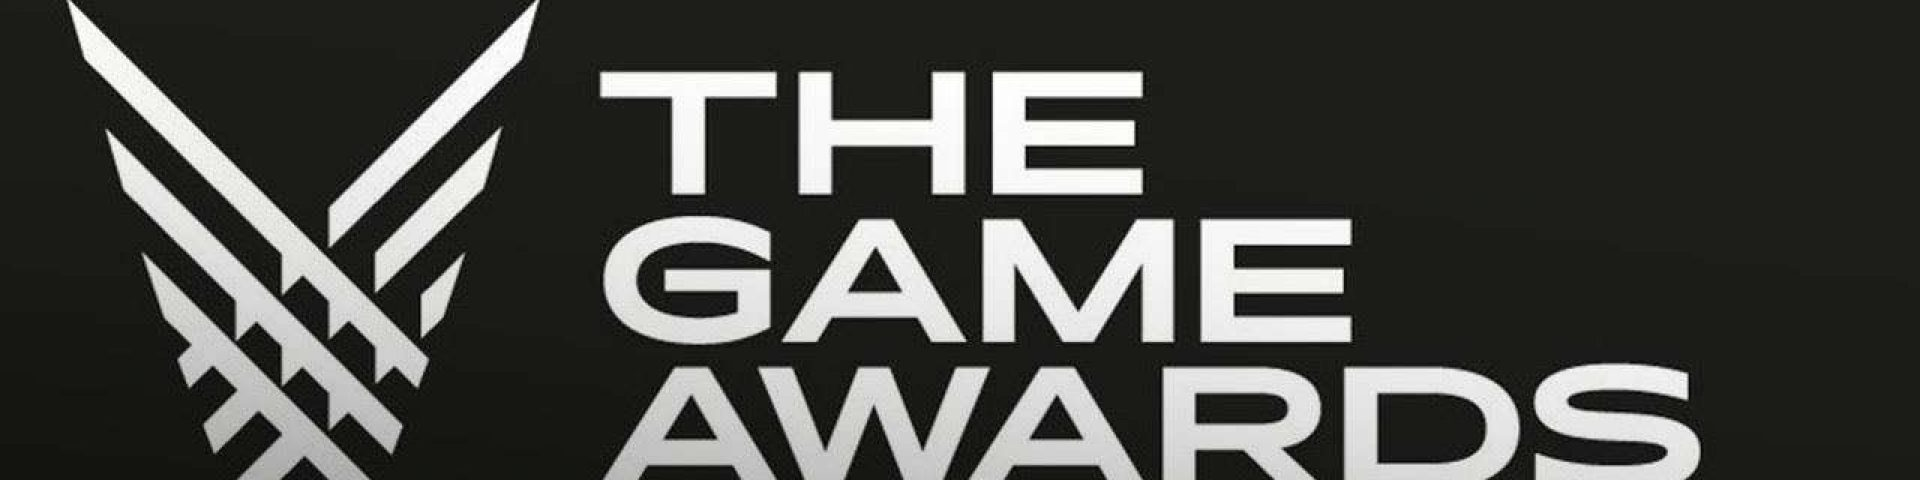 ¿Por qué los finalistas de The Game Awards llegaron a podio?